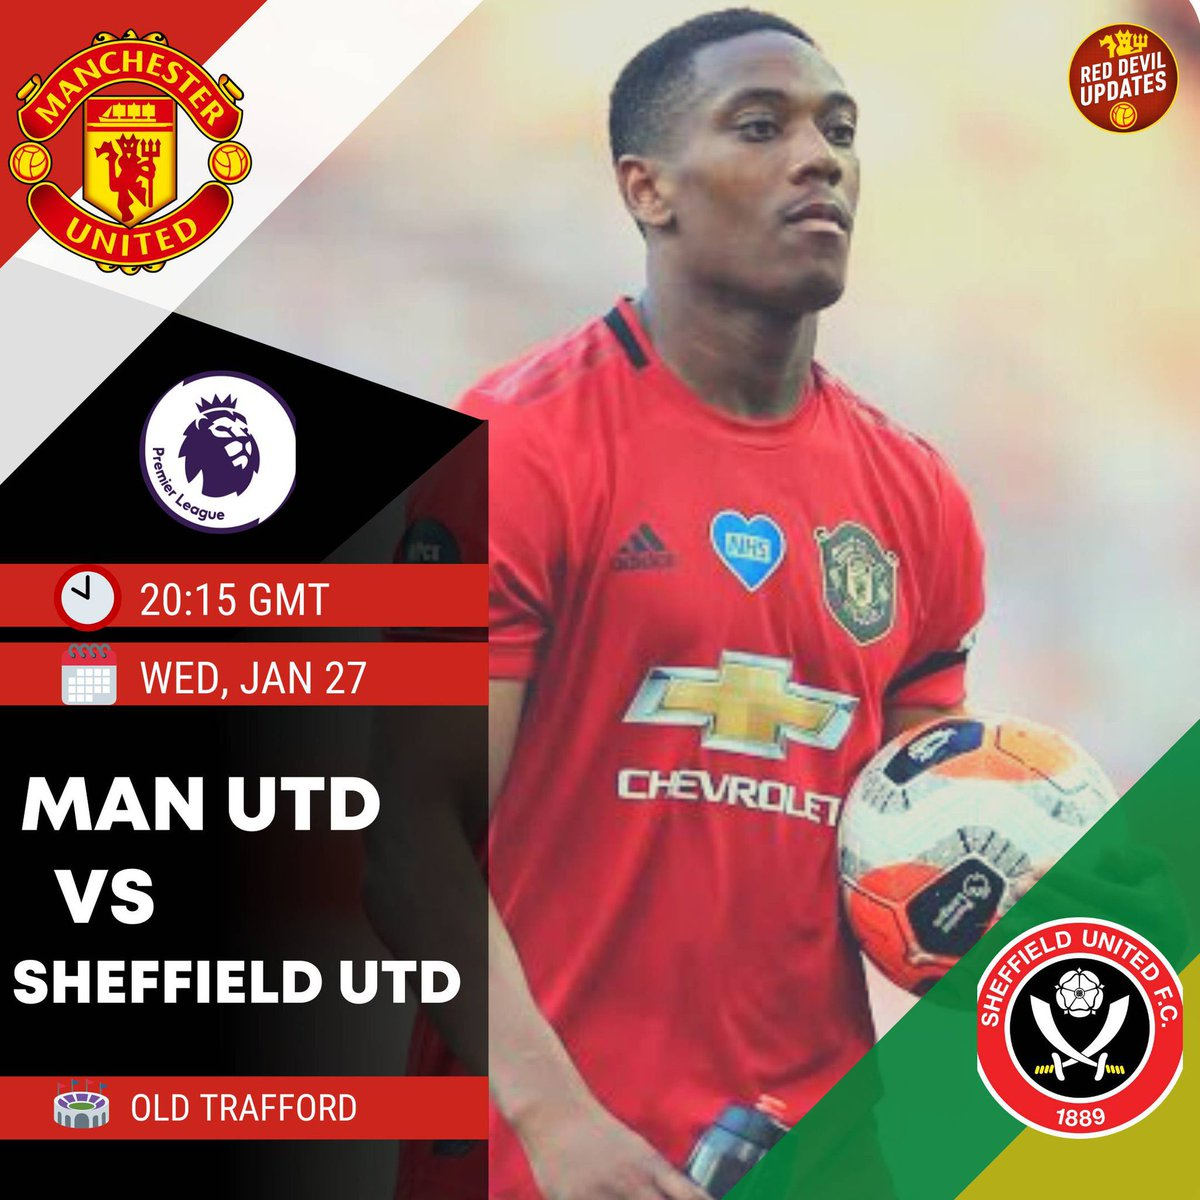 🔴 It's matchday!  #mufc host Chris Wilder's Sheffield United at Old Trafford.  What are your score predictions?